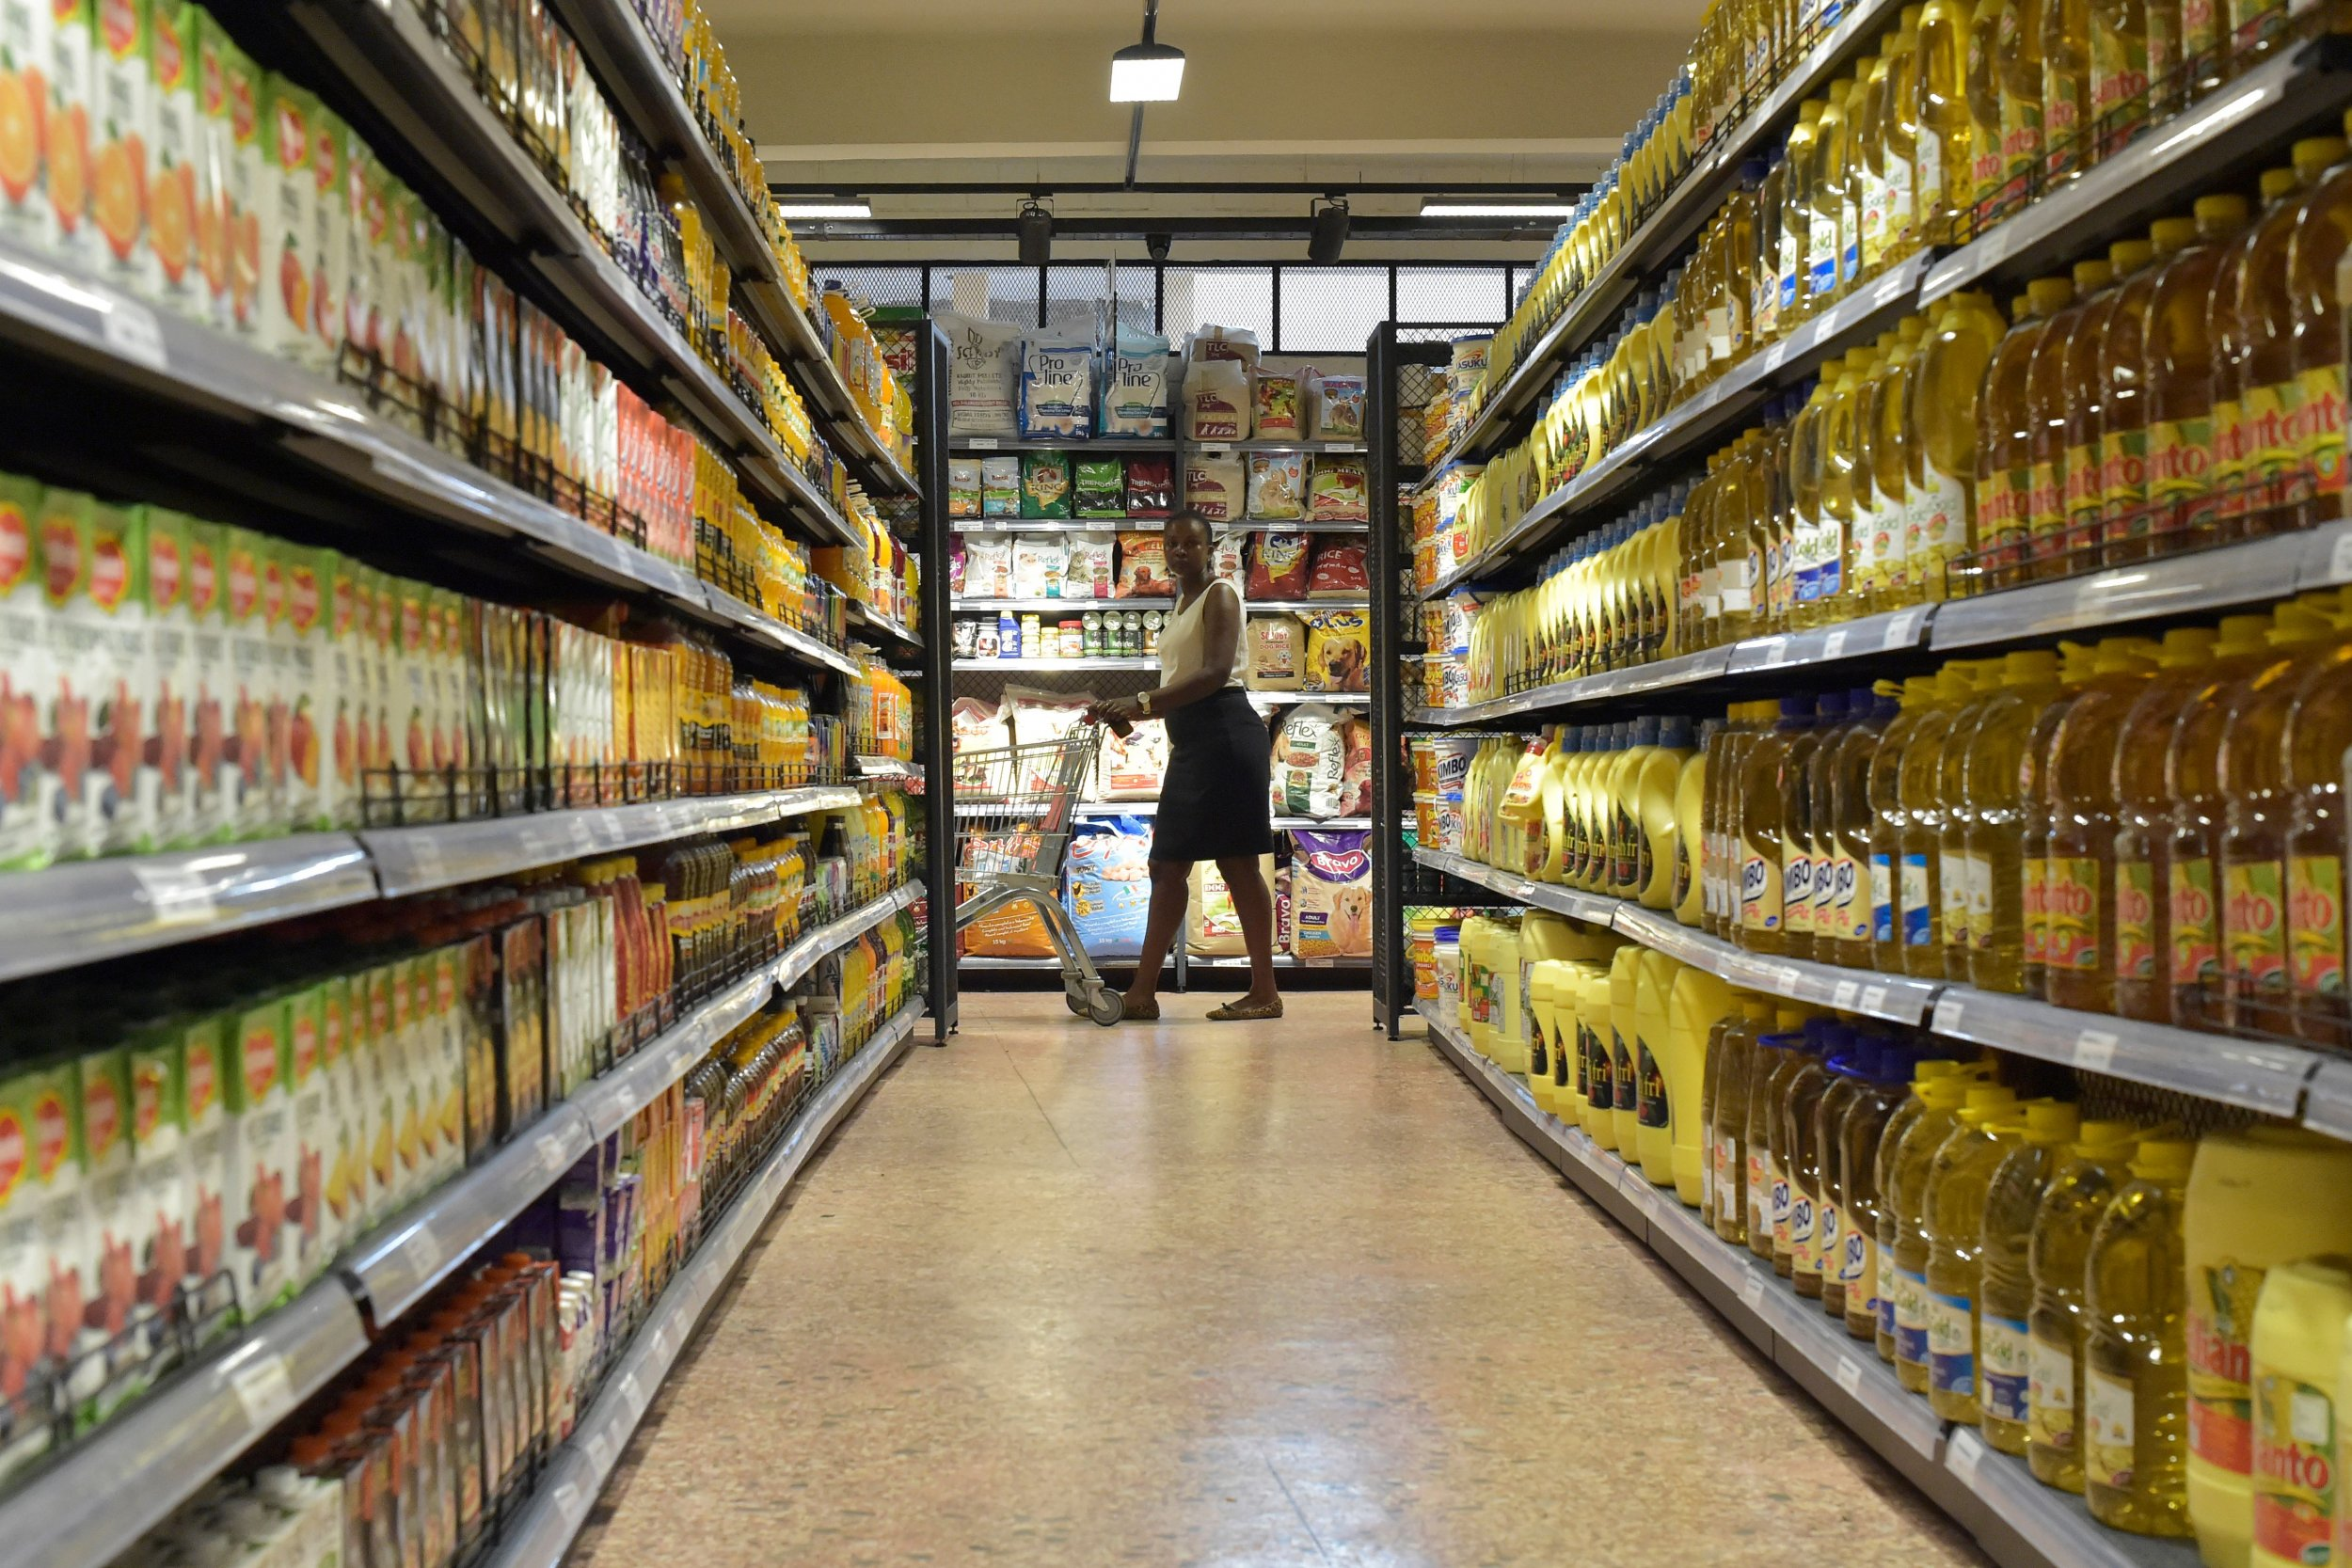 Body, Supermarket, Shelves, Coolers, Iowa, Mystery